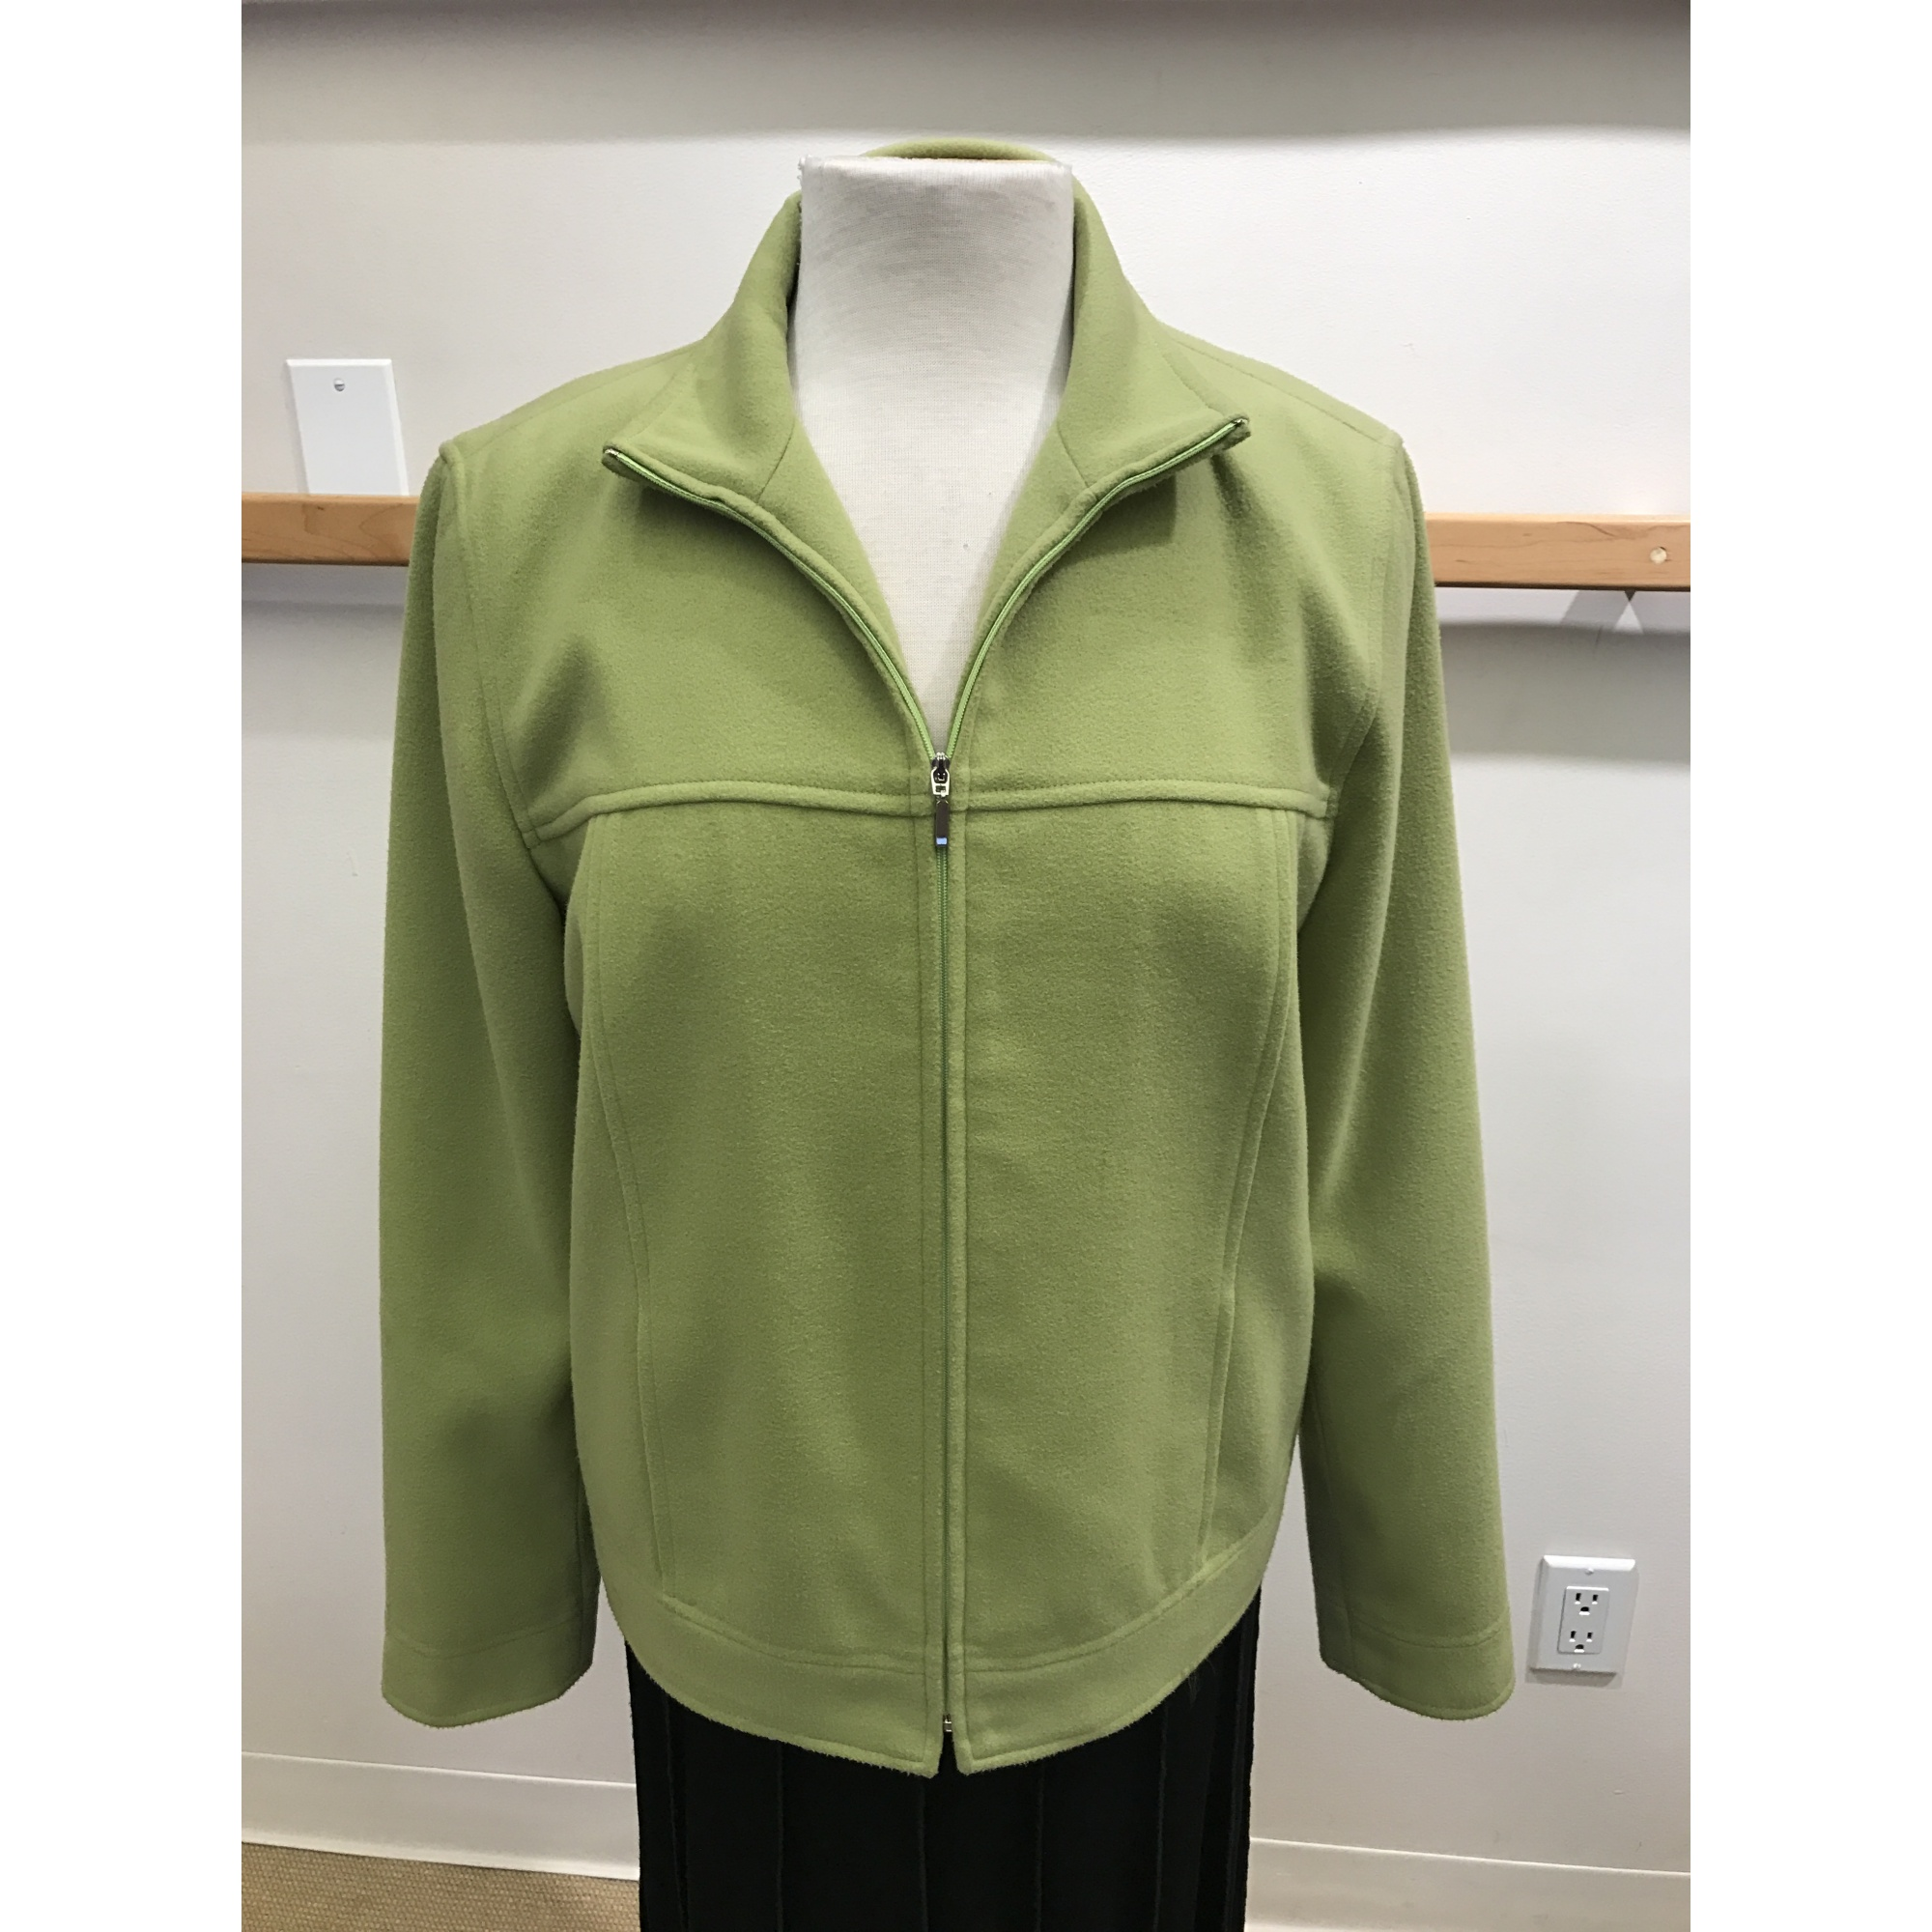 Lime Green Fuzzy Flannel Like Outerwear Jacket Front Zip (Style# 11615)